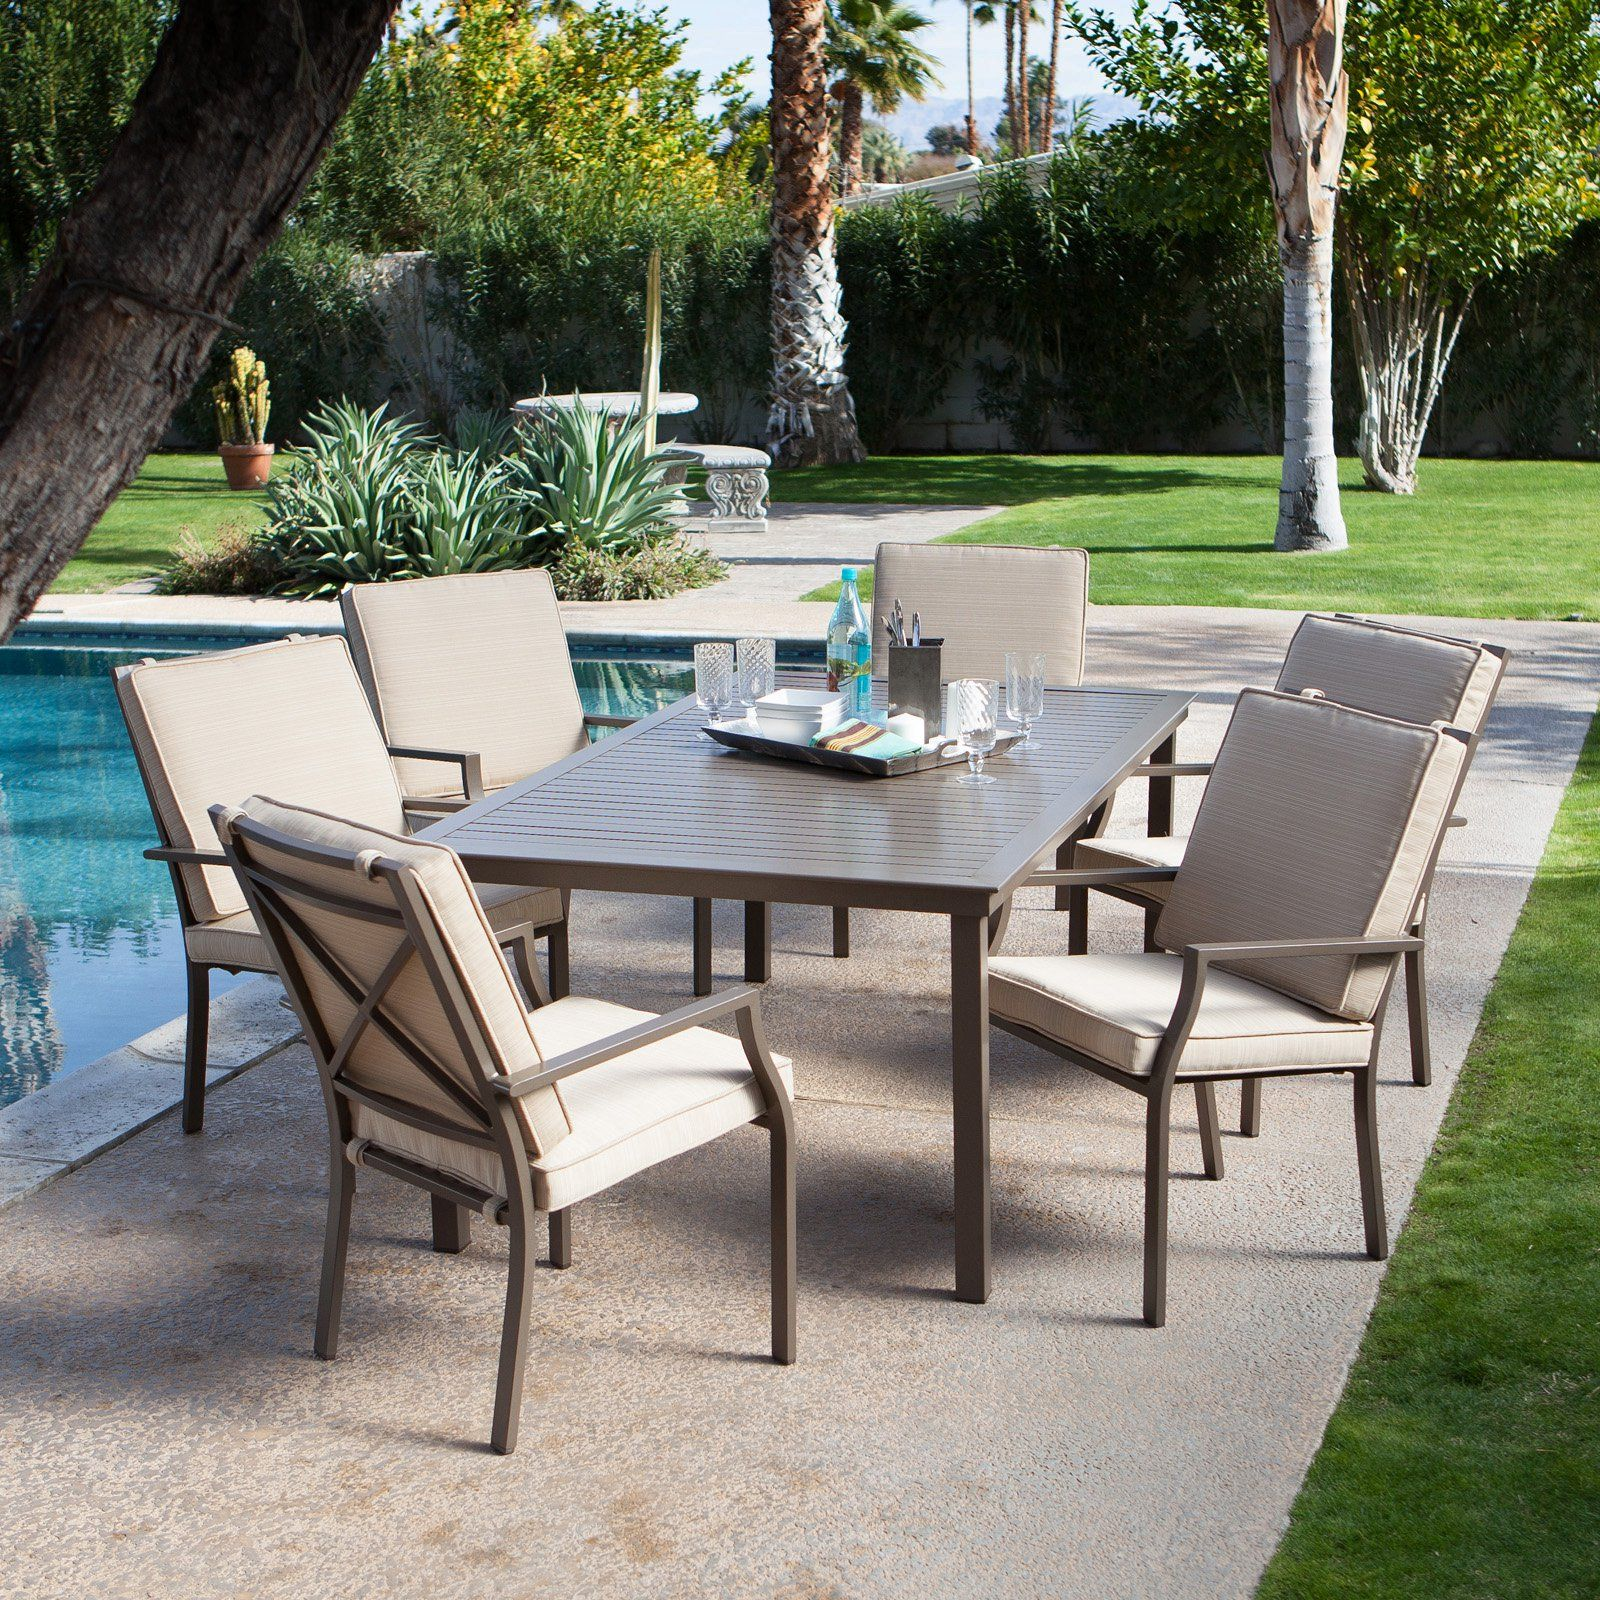 Superb Coral Coast Bellagio Cushioned Aluminum Patio Dining Set   Seats 6